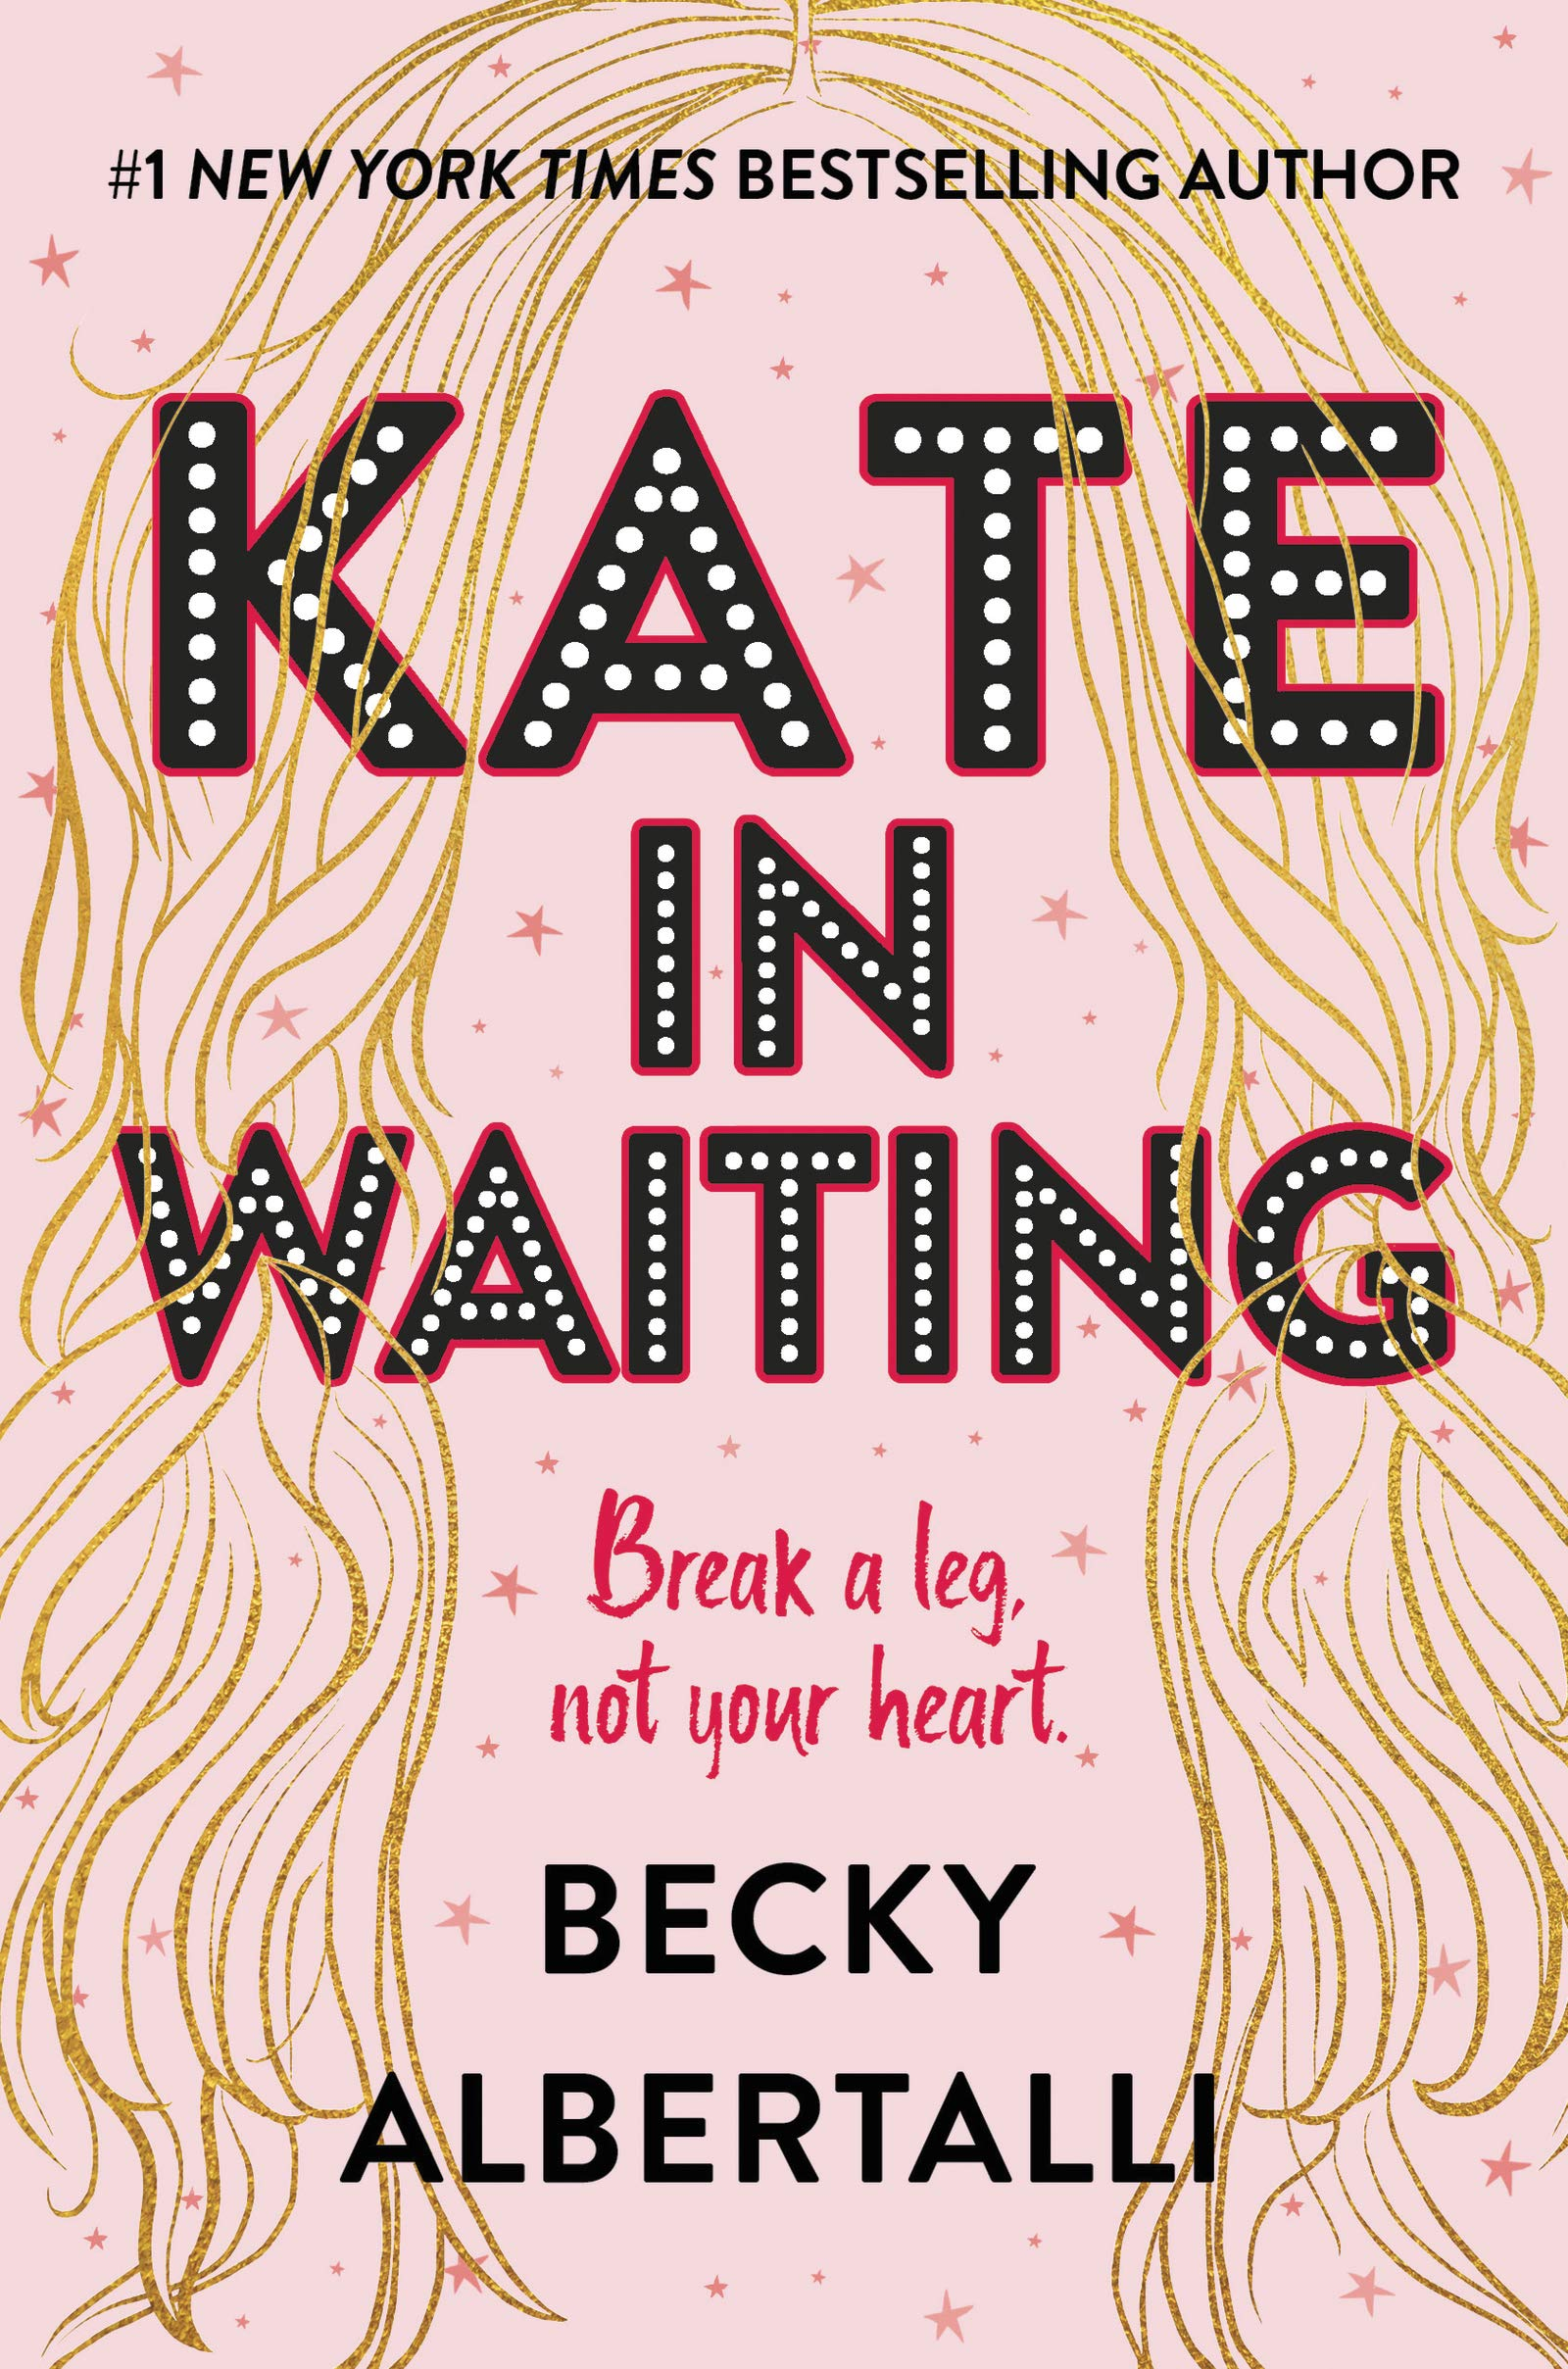 Top 2021 Releases: Kate in Waiting